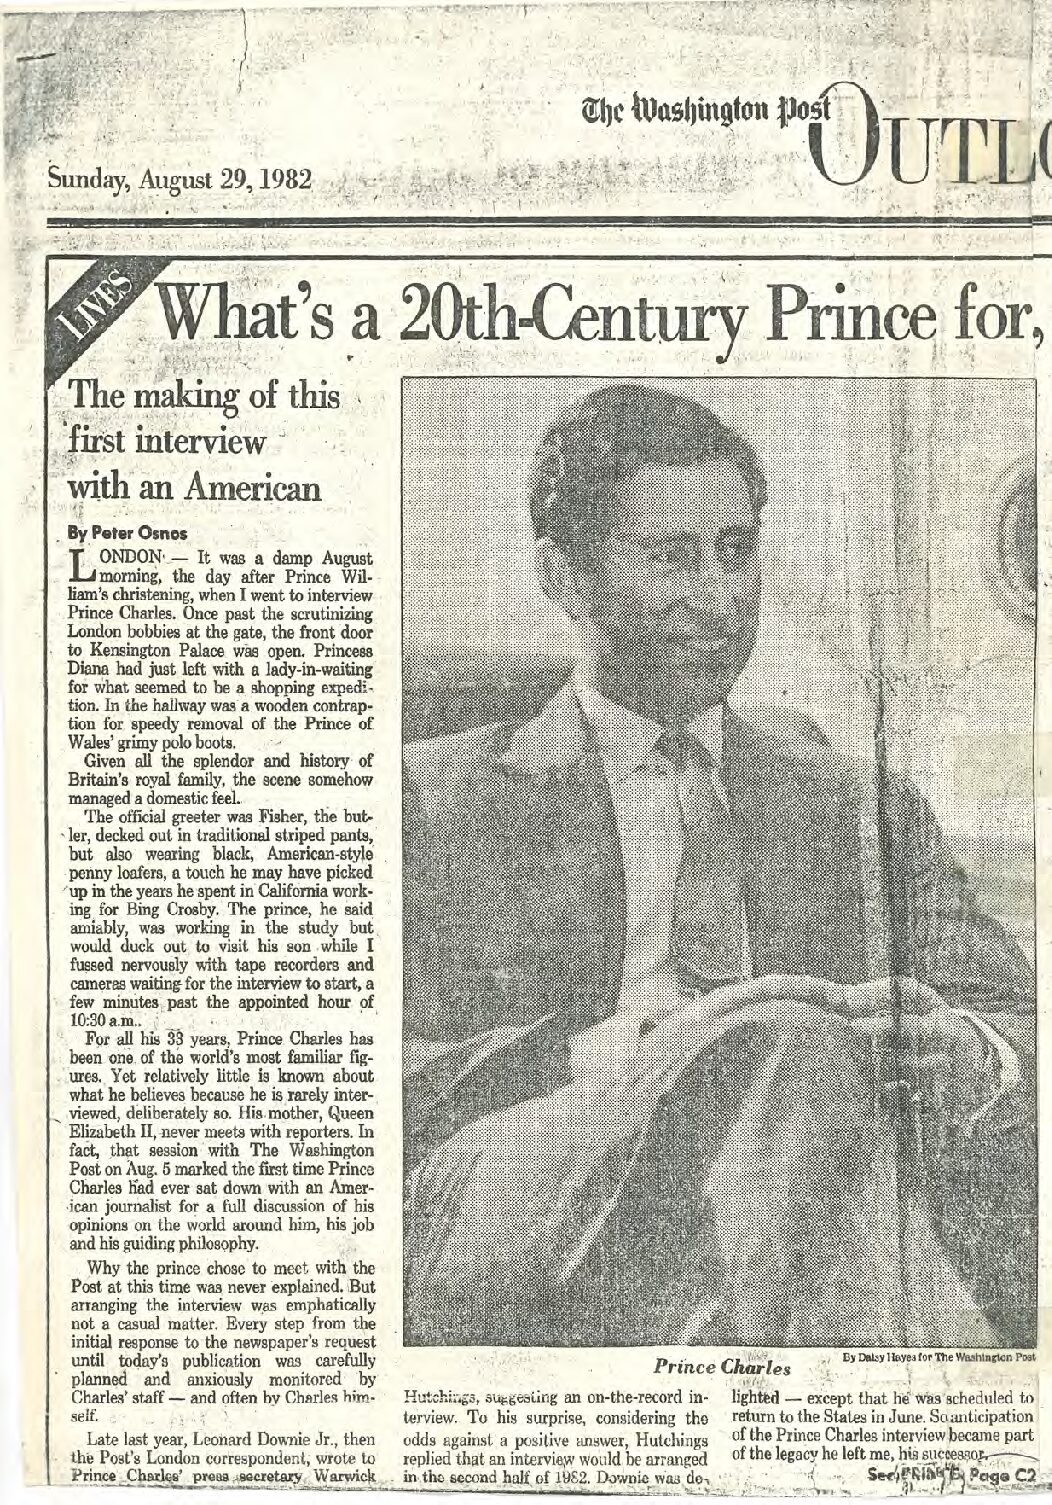 What's a 20th-Century Prince for?